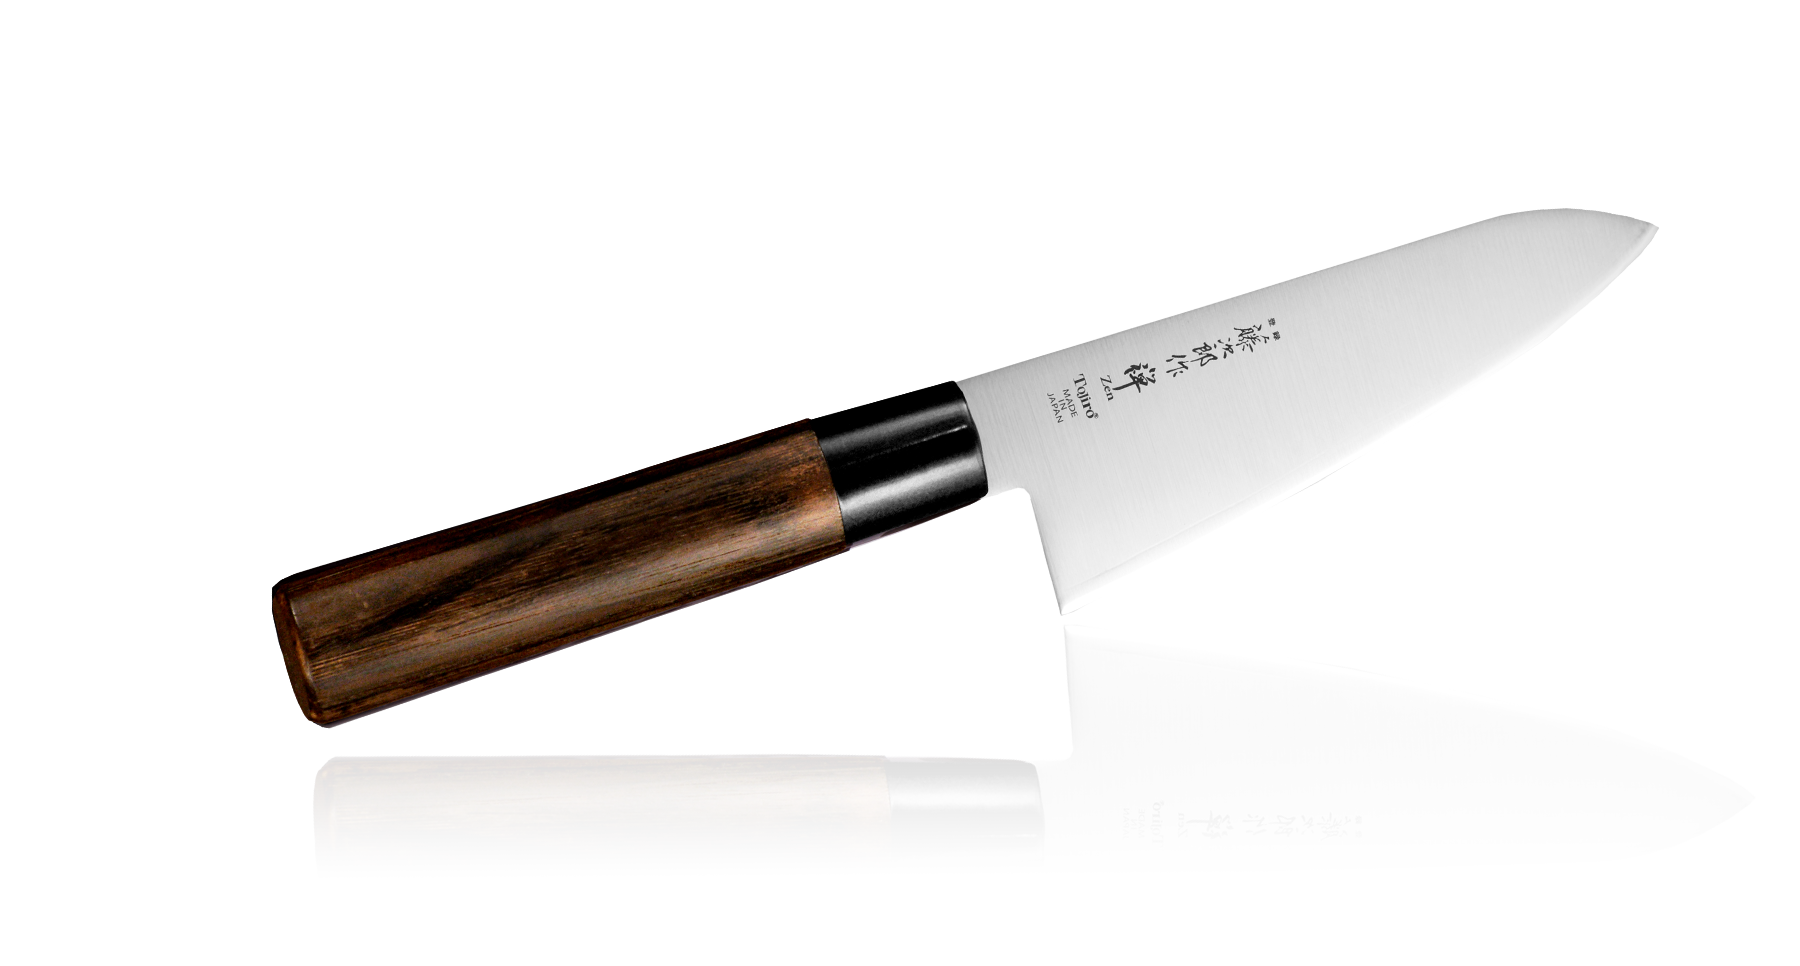 Coltello giapponese Chef Tojiro Zen 180 mm (FD-563)